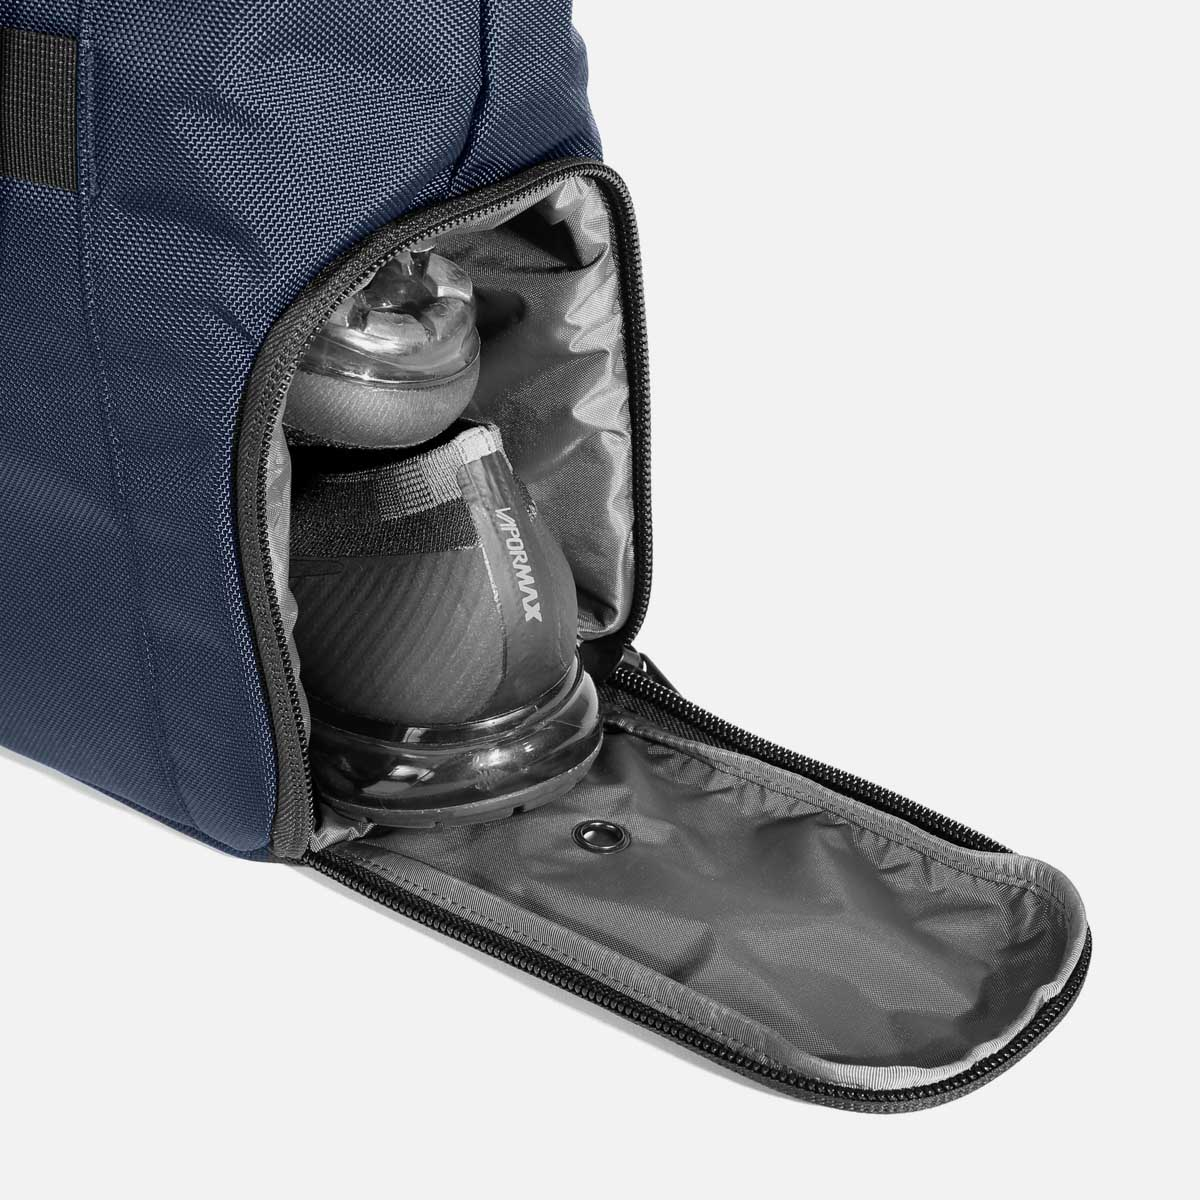 13008_gymtote_navy_shoes.jpg